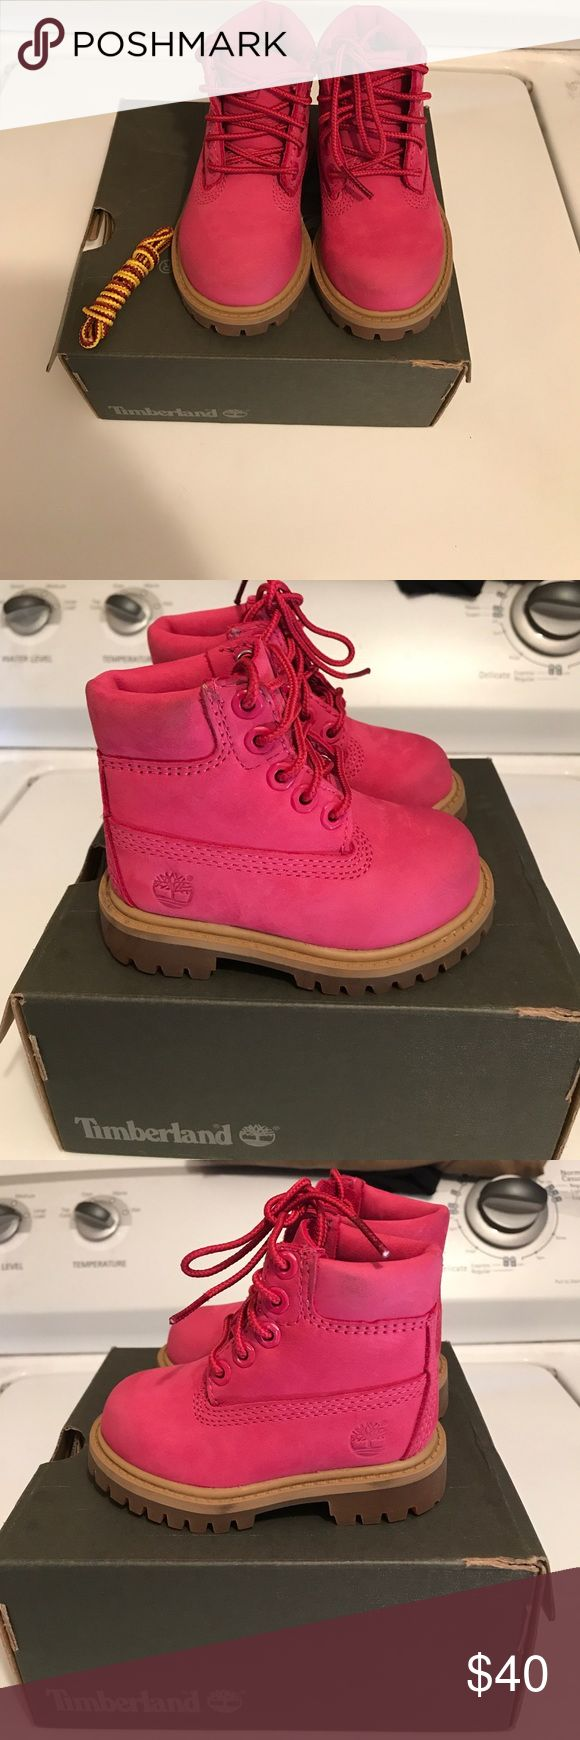 Pink Toddlers Timberland boots EUC toddlers timberland boots. Only worn a handful of times and very well kept. Comes with pink and original timberland laces and box. Timberland Shoes Boots